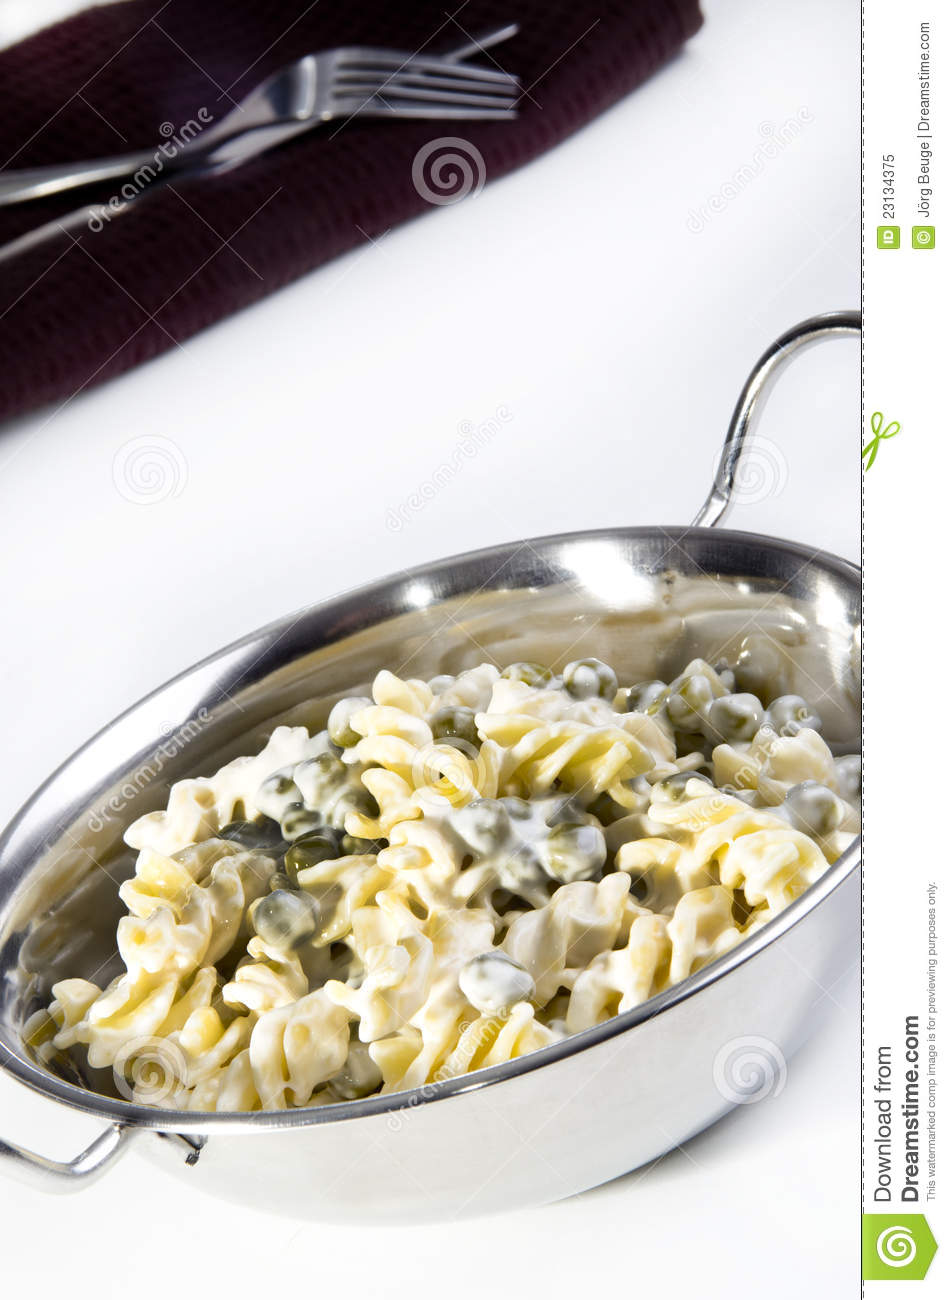 how to use mayonnaise in pasta